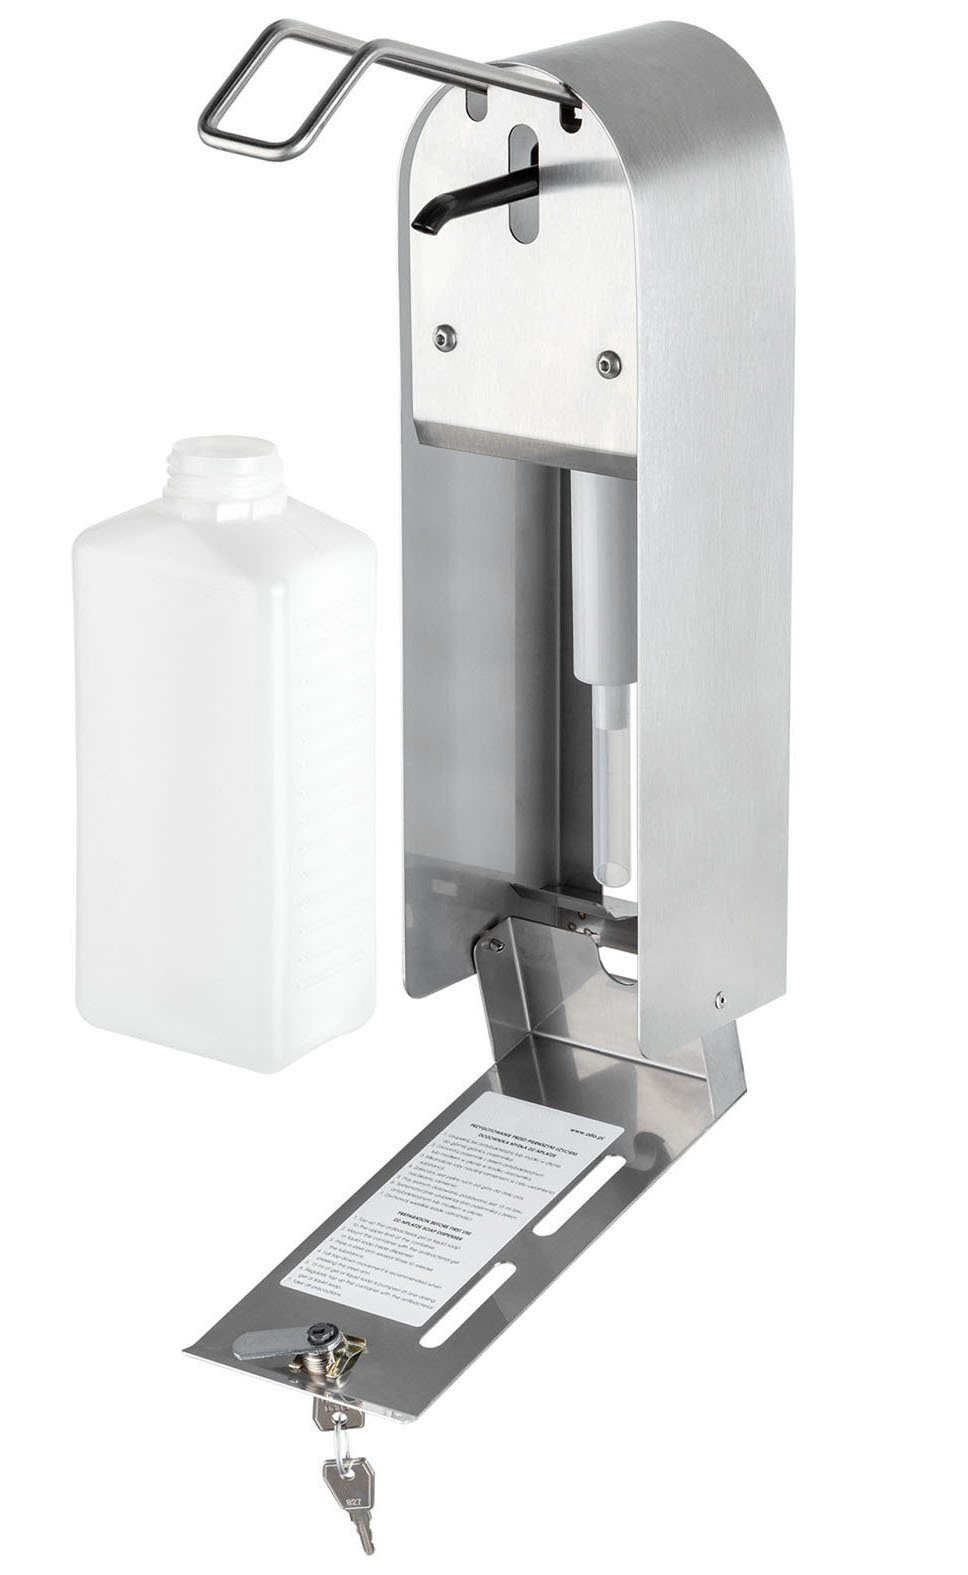 Hygiene - Hygiene Dispenser